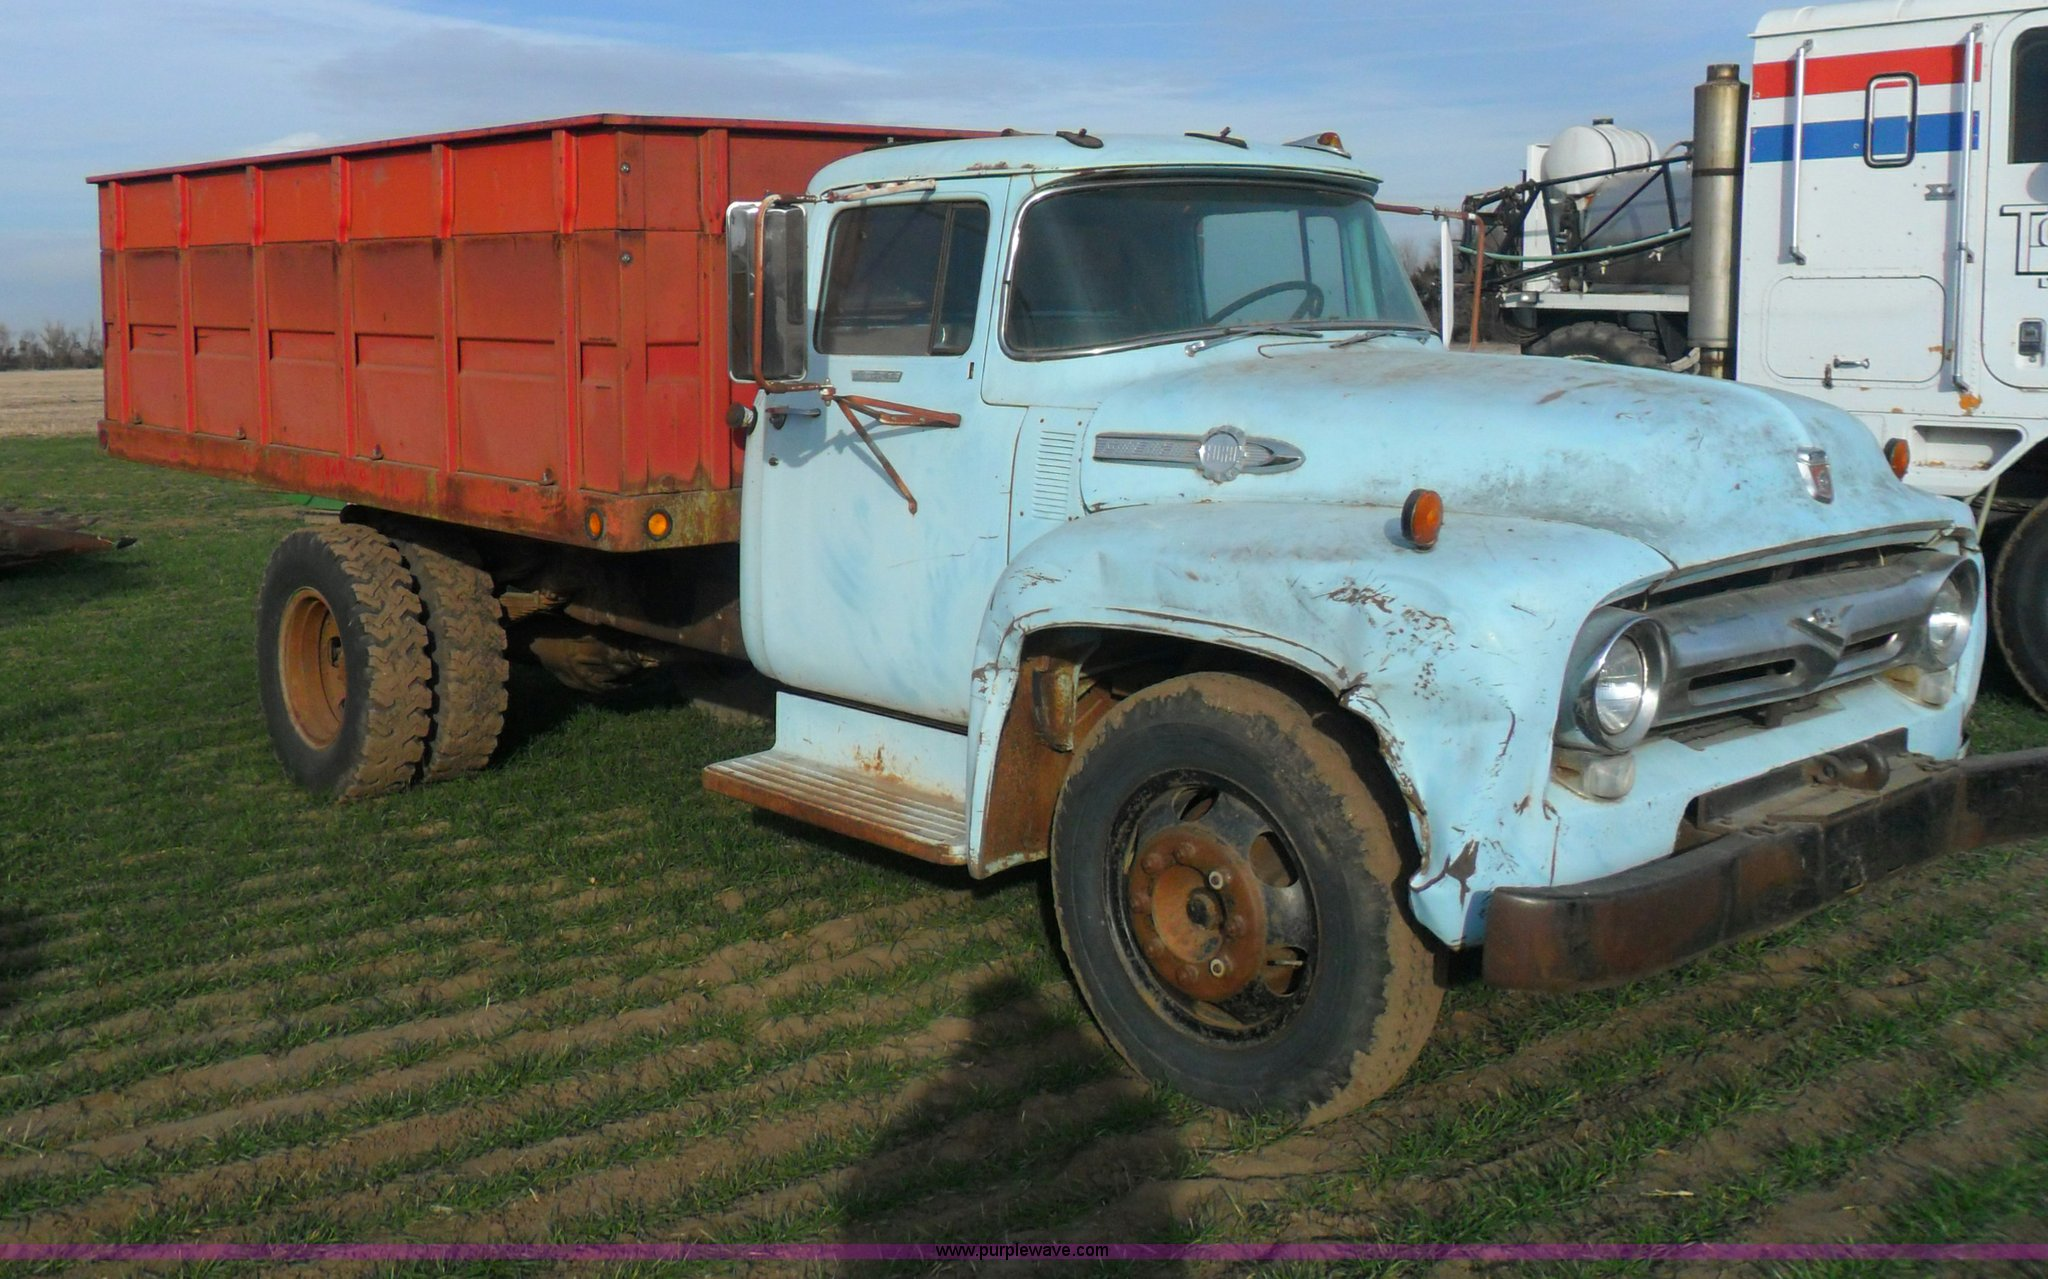 1956 Ford F700 Truck Item Ab9239 Sold February 13 Ag Eq. Ab9239 For Item 1956 Ford F700 Truck. Ford. Ford F700 Truck Headlight Parts Diagrams At Scoala.co